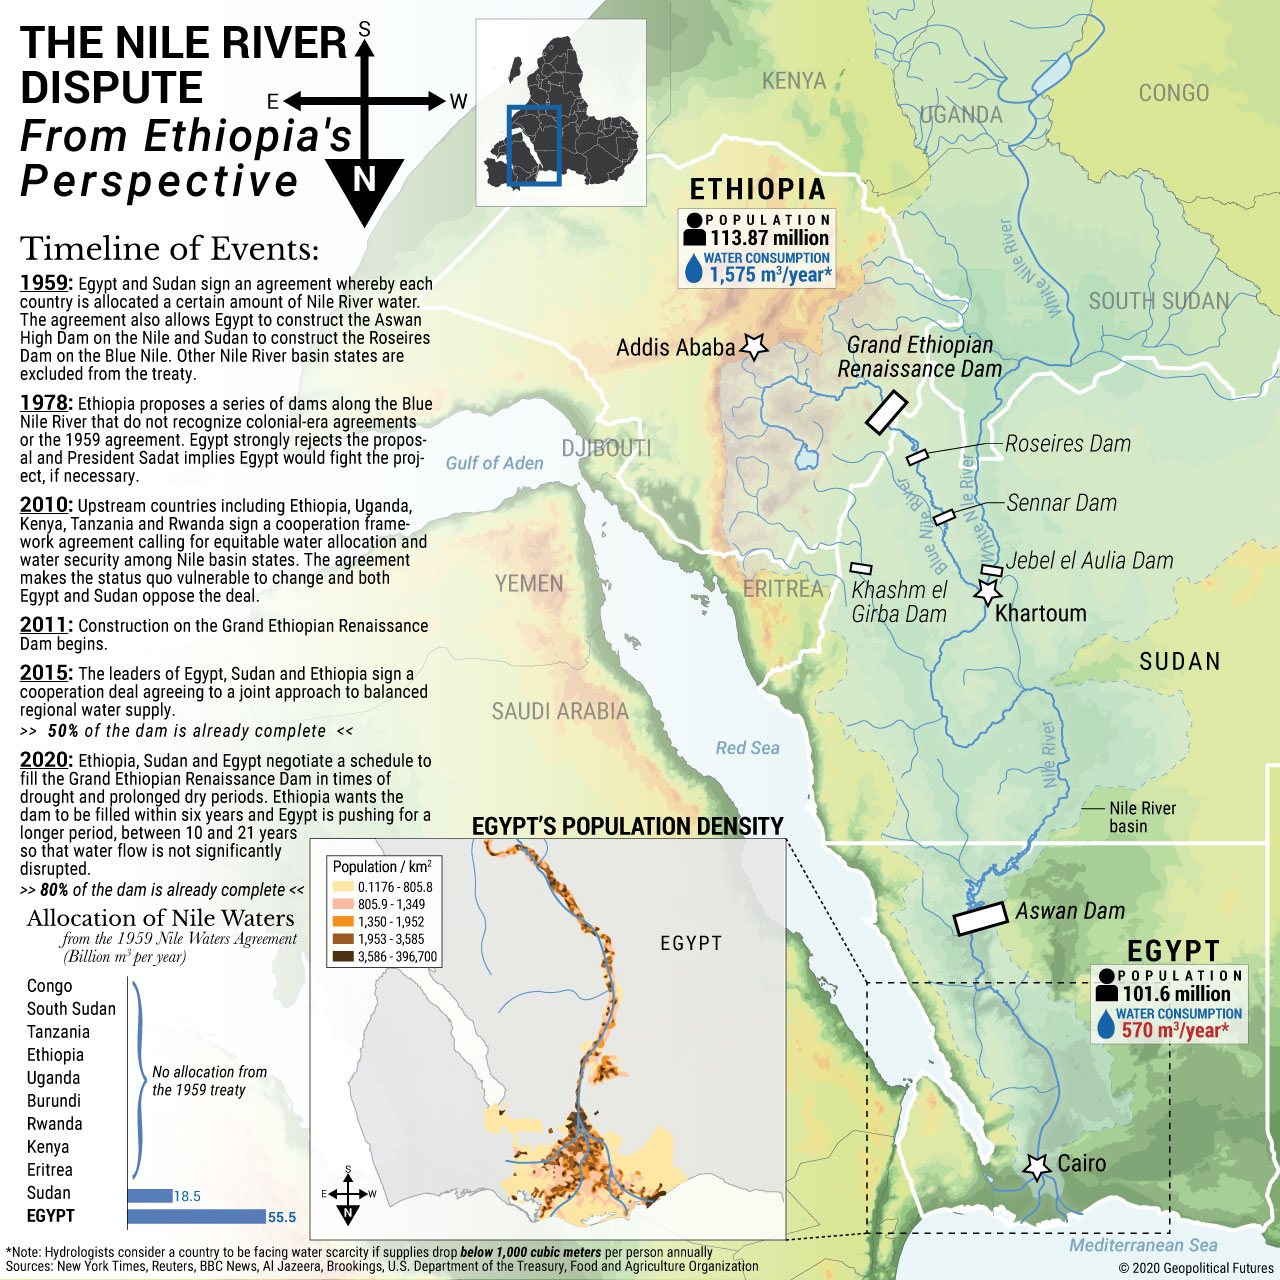 The Nile River Dispute From Ethiopia's Perspective